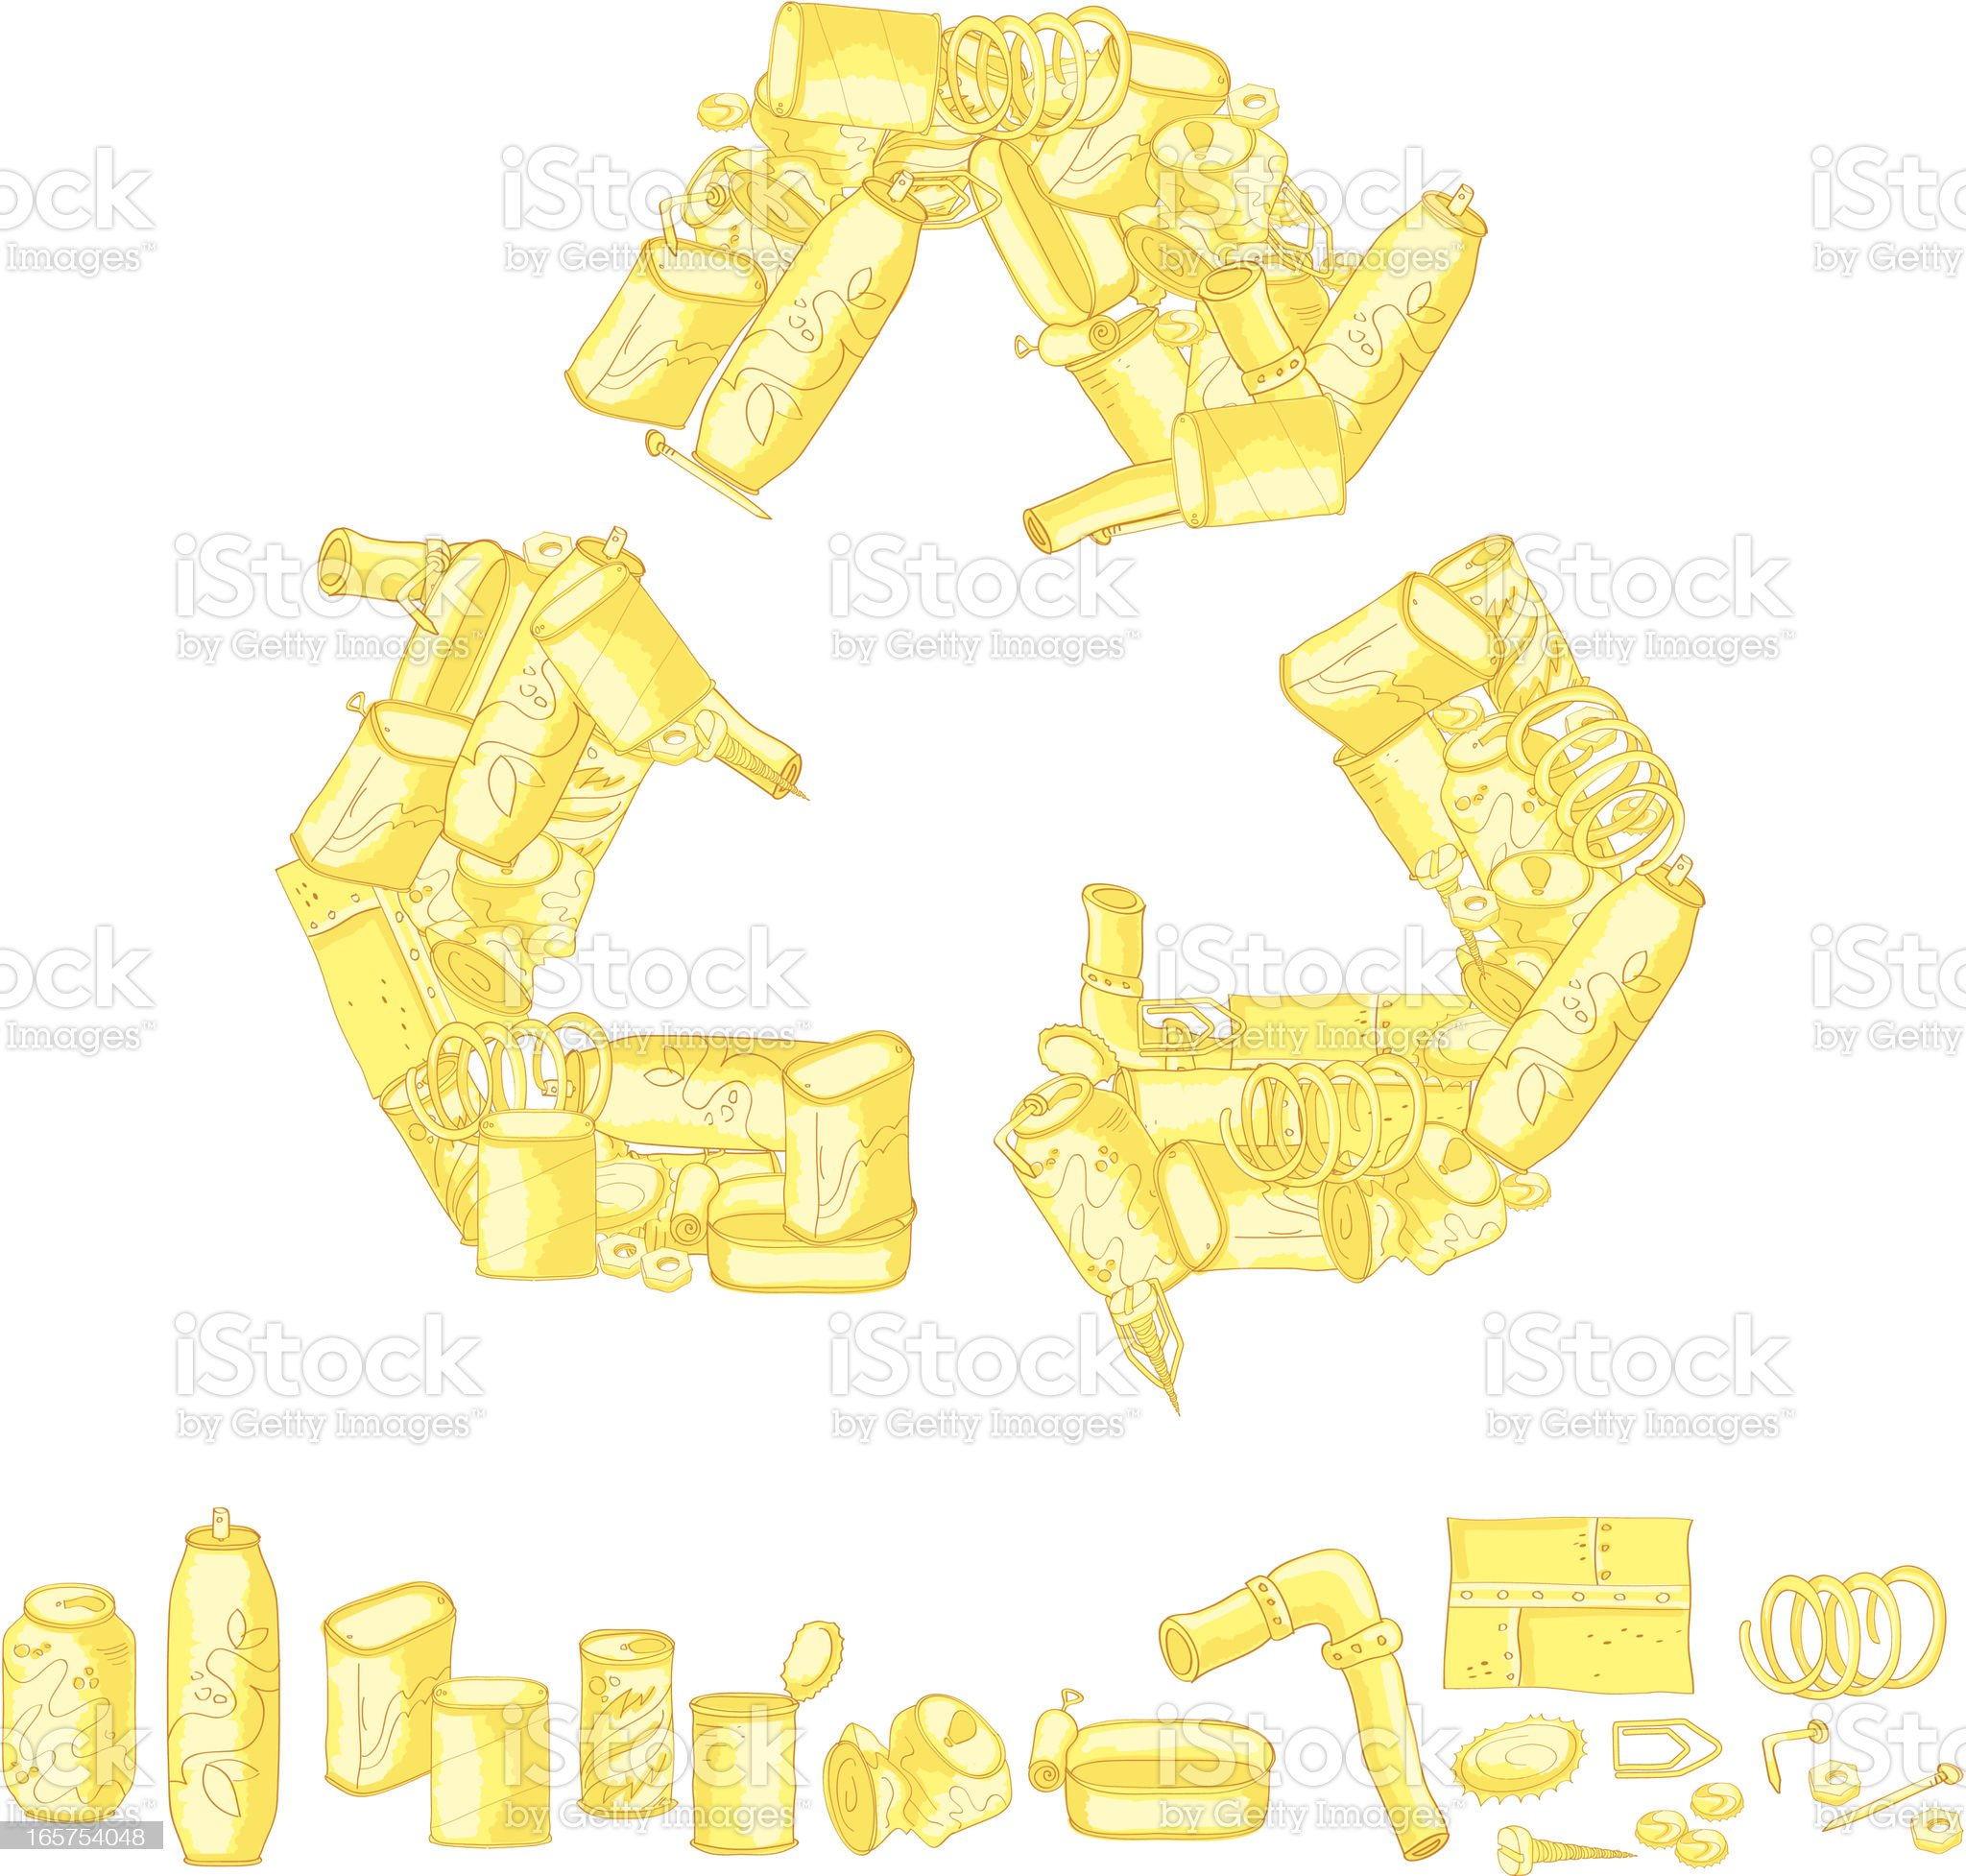 Recycling symbol made up of recycled items royalty-free stock vector art